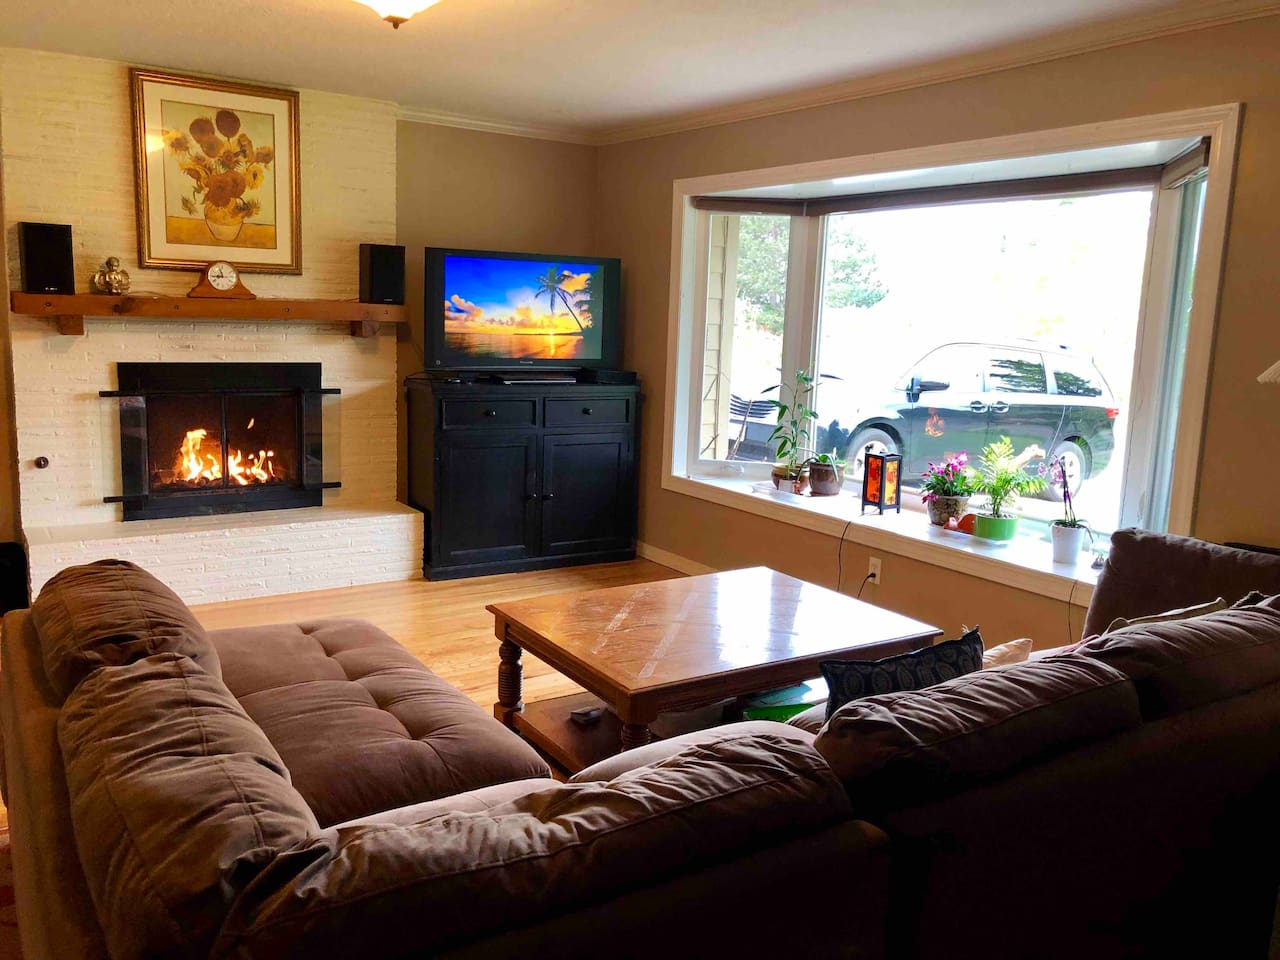 Living room with gas fire place, TV and big comfy couch